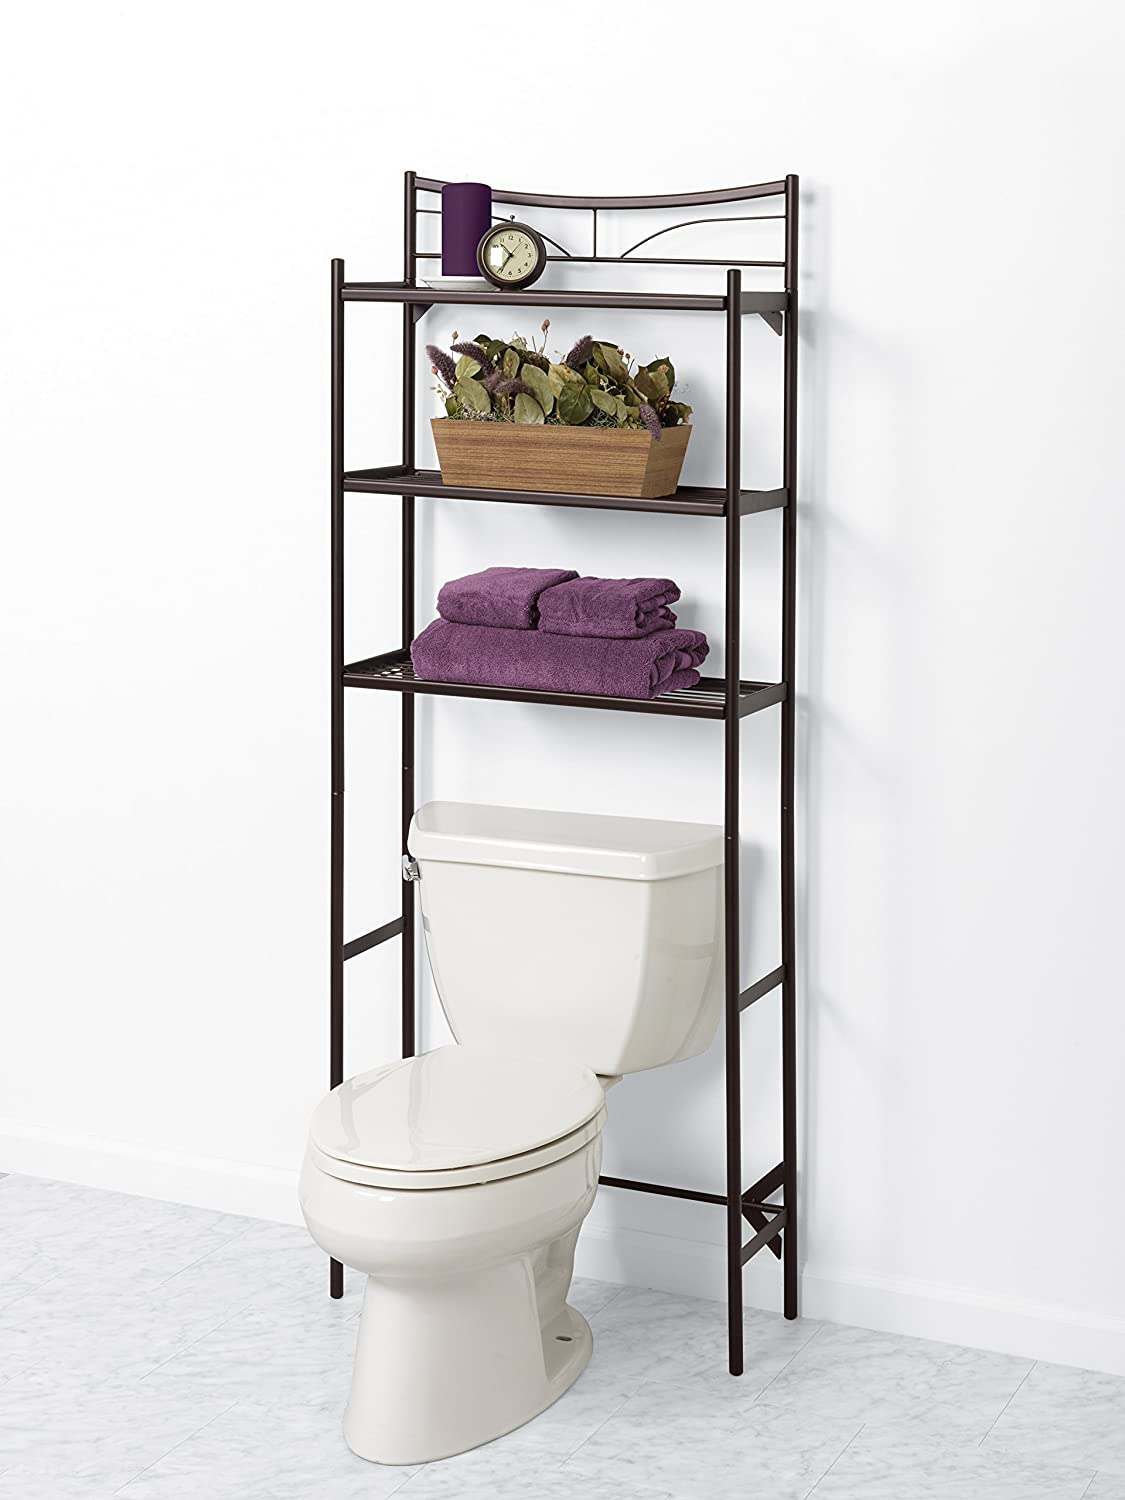 Bathroom spacesaver over toilet shelves storage metal for Bathroom over the toilet shelf